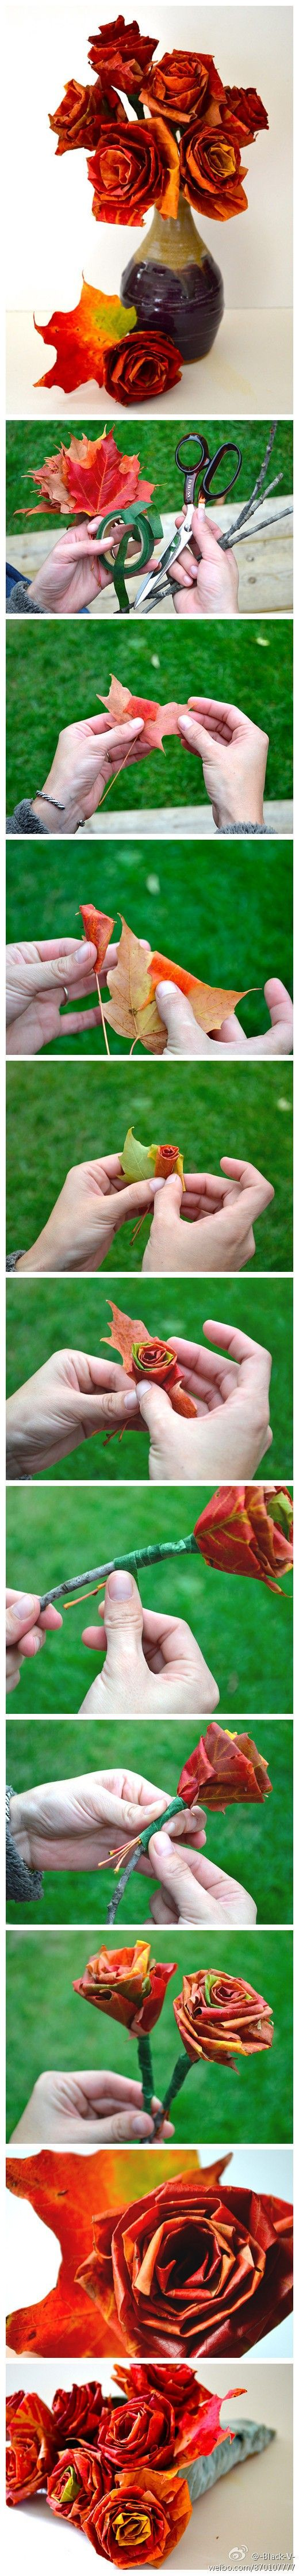 Turn fall leaves into seasonal roses for a centerpiece!...How Neato!